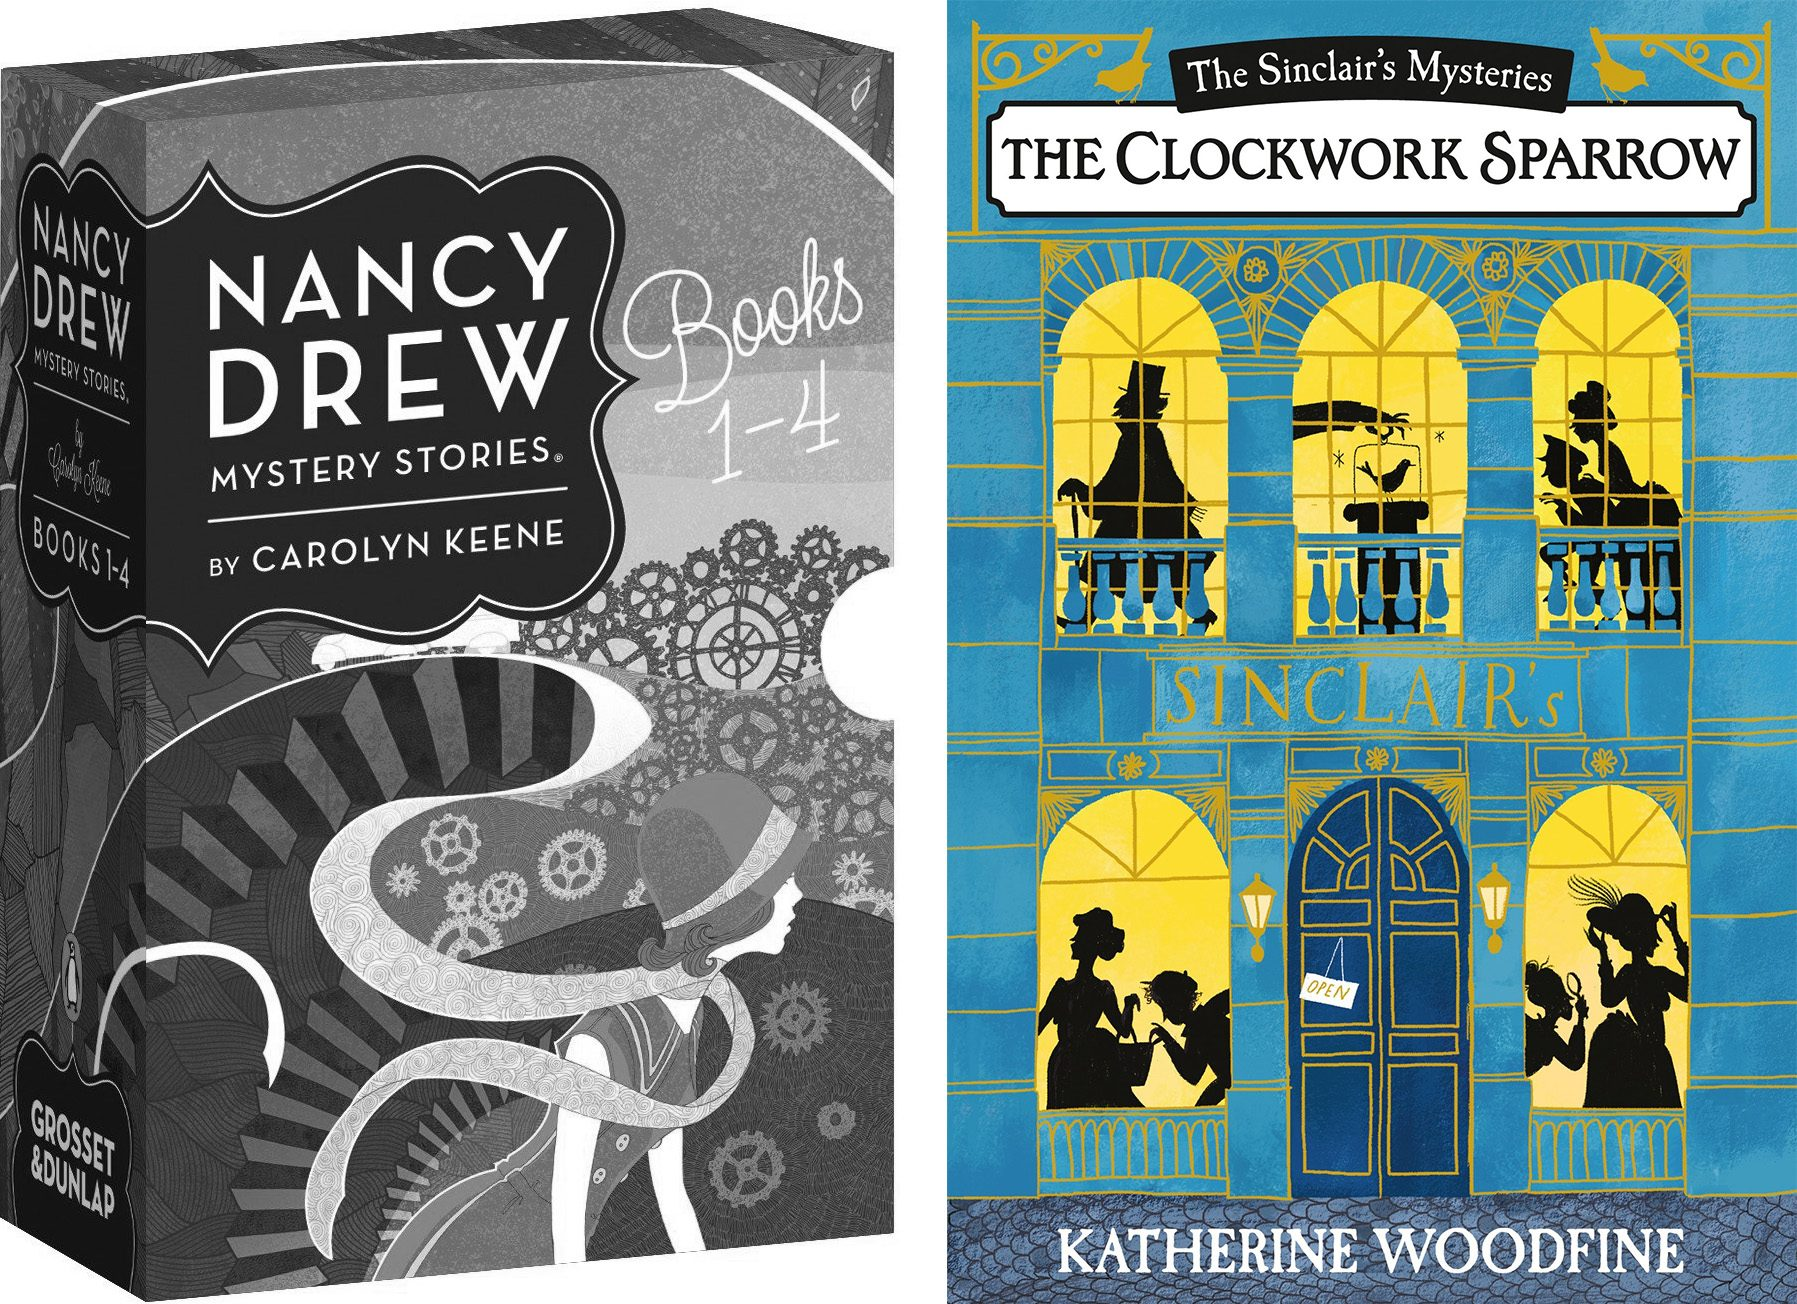 nancy drew mystery book and sinclair mysteries